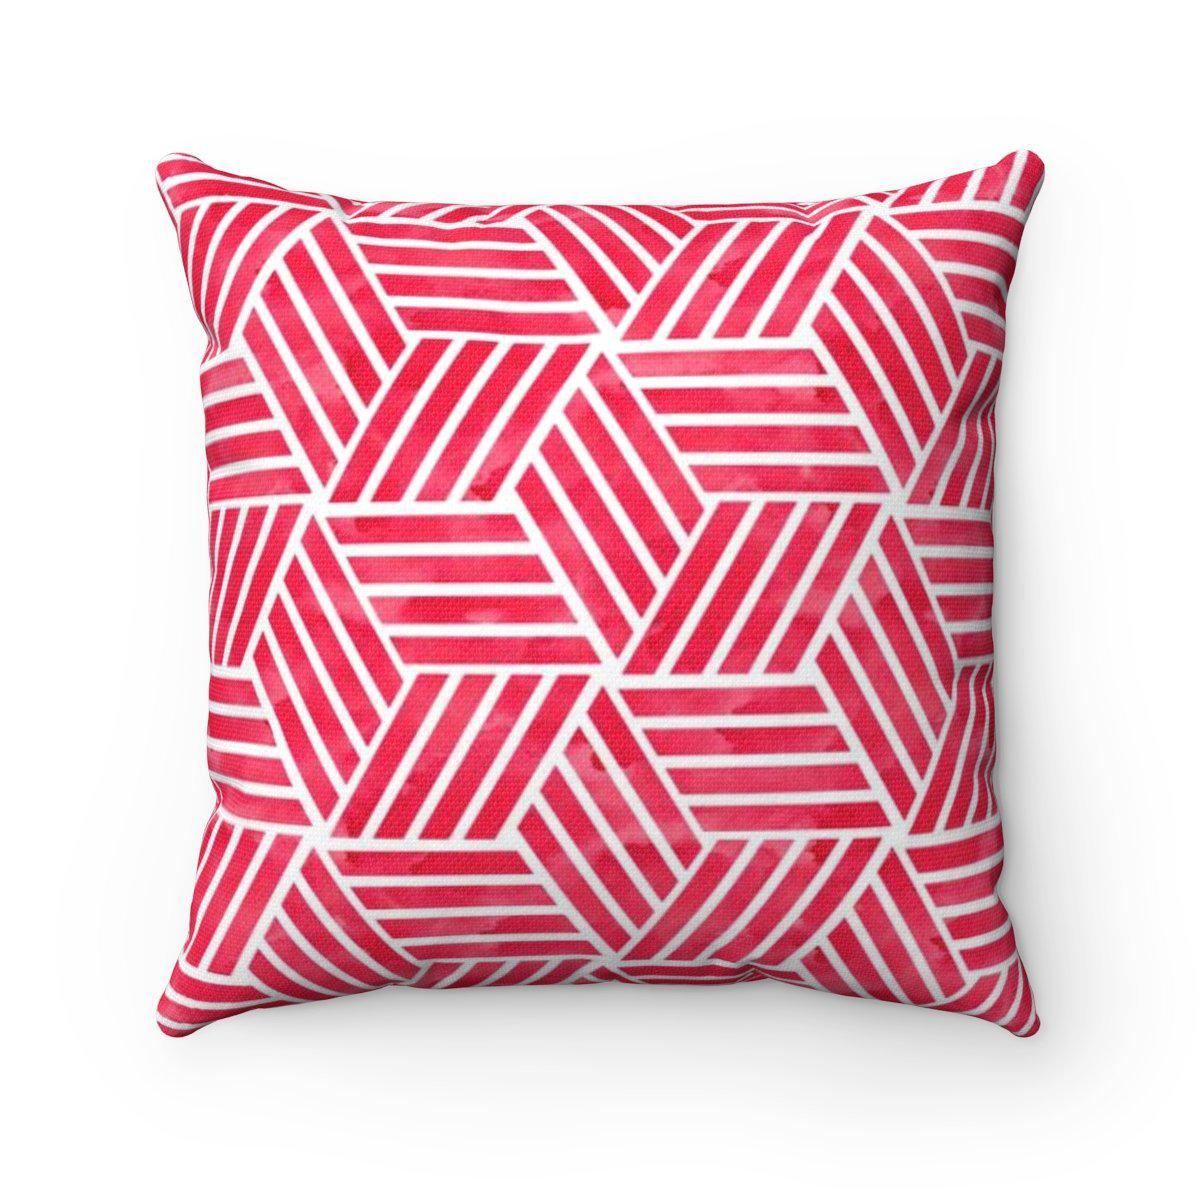 Red geometric decorative cushion cover-Home Decor - Decorative Accents - Pillows & Throws - Decorative Pillows-Maison d'Elite-14x14-Très Elite